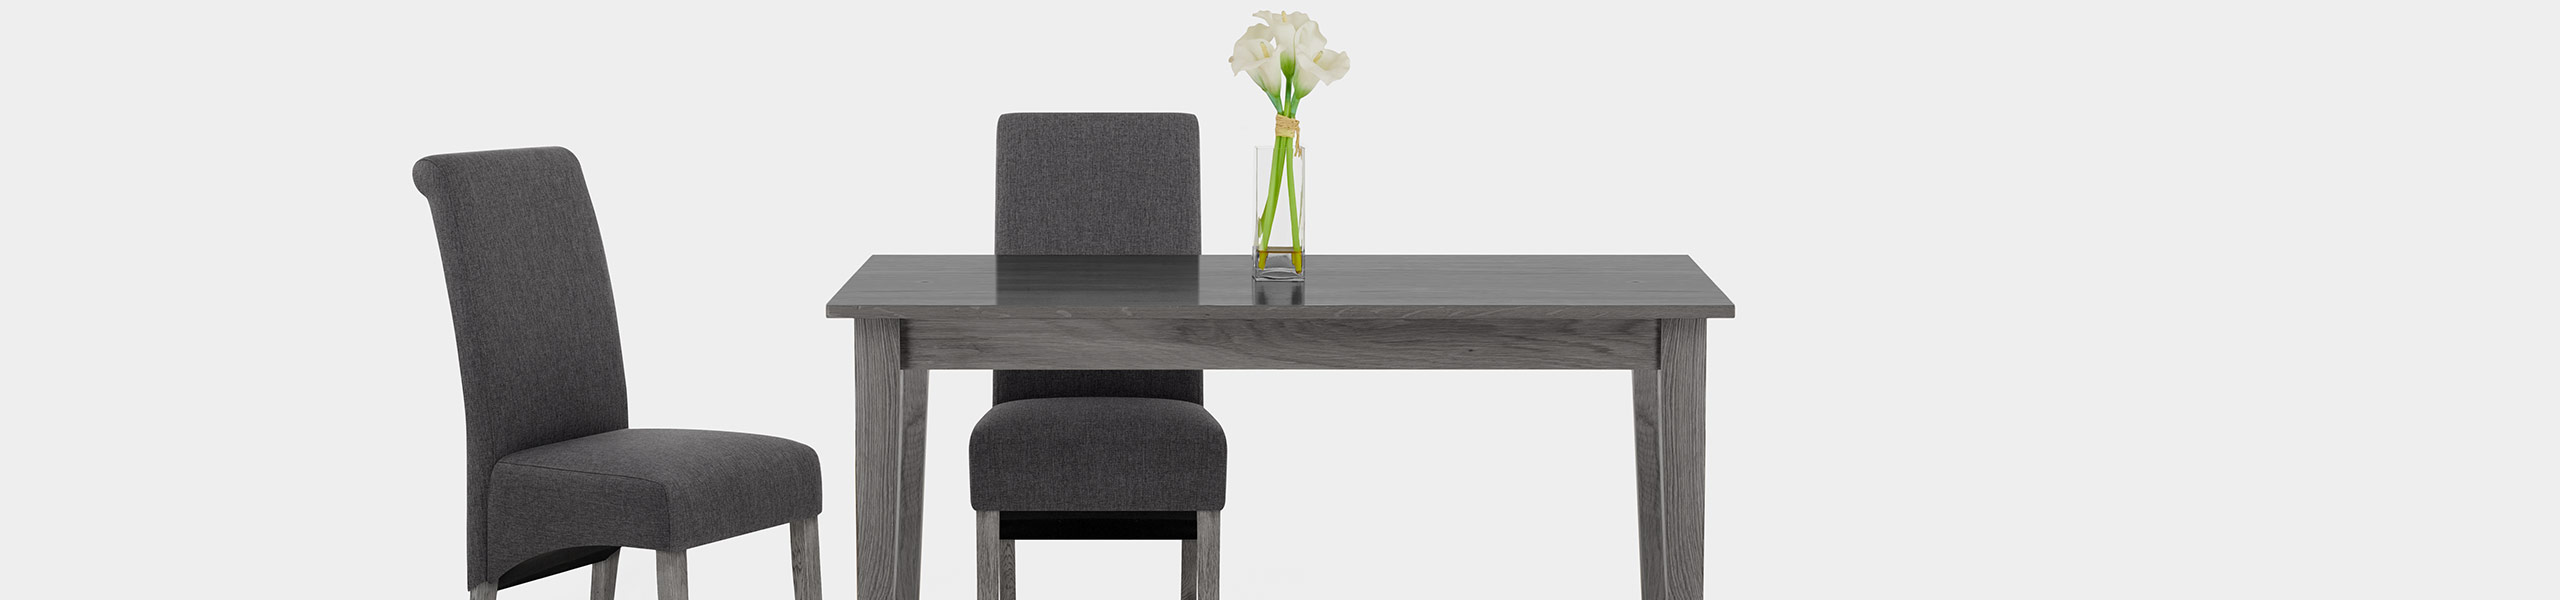 Carlo Grey Oak Chair Charcoal Fabric Video Banner